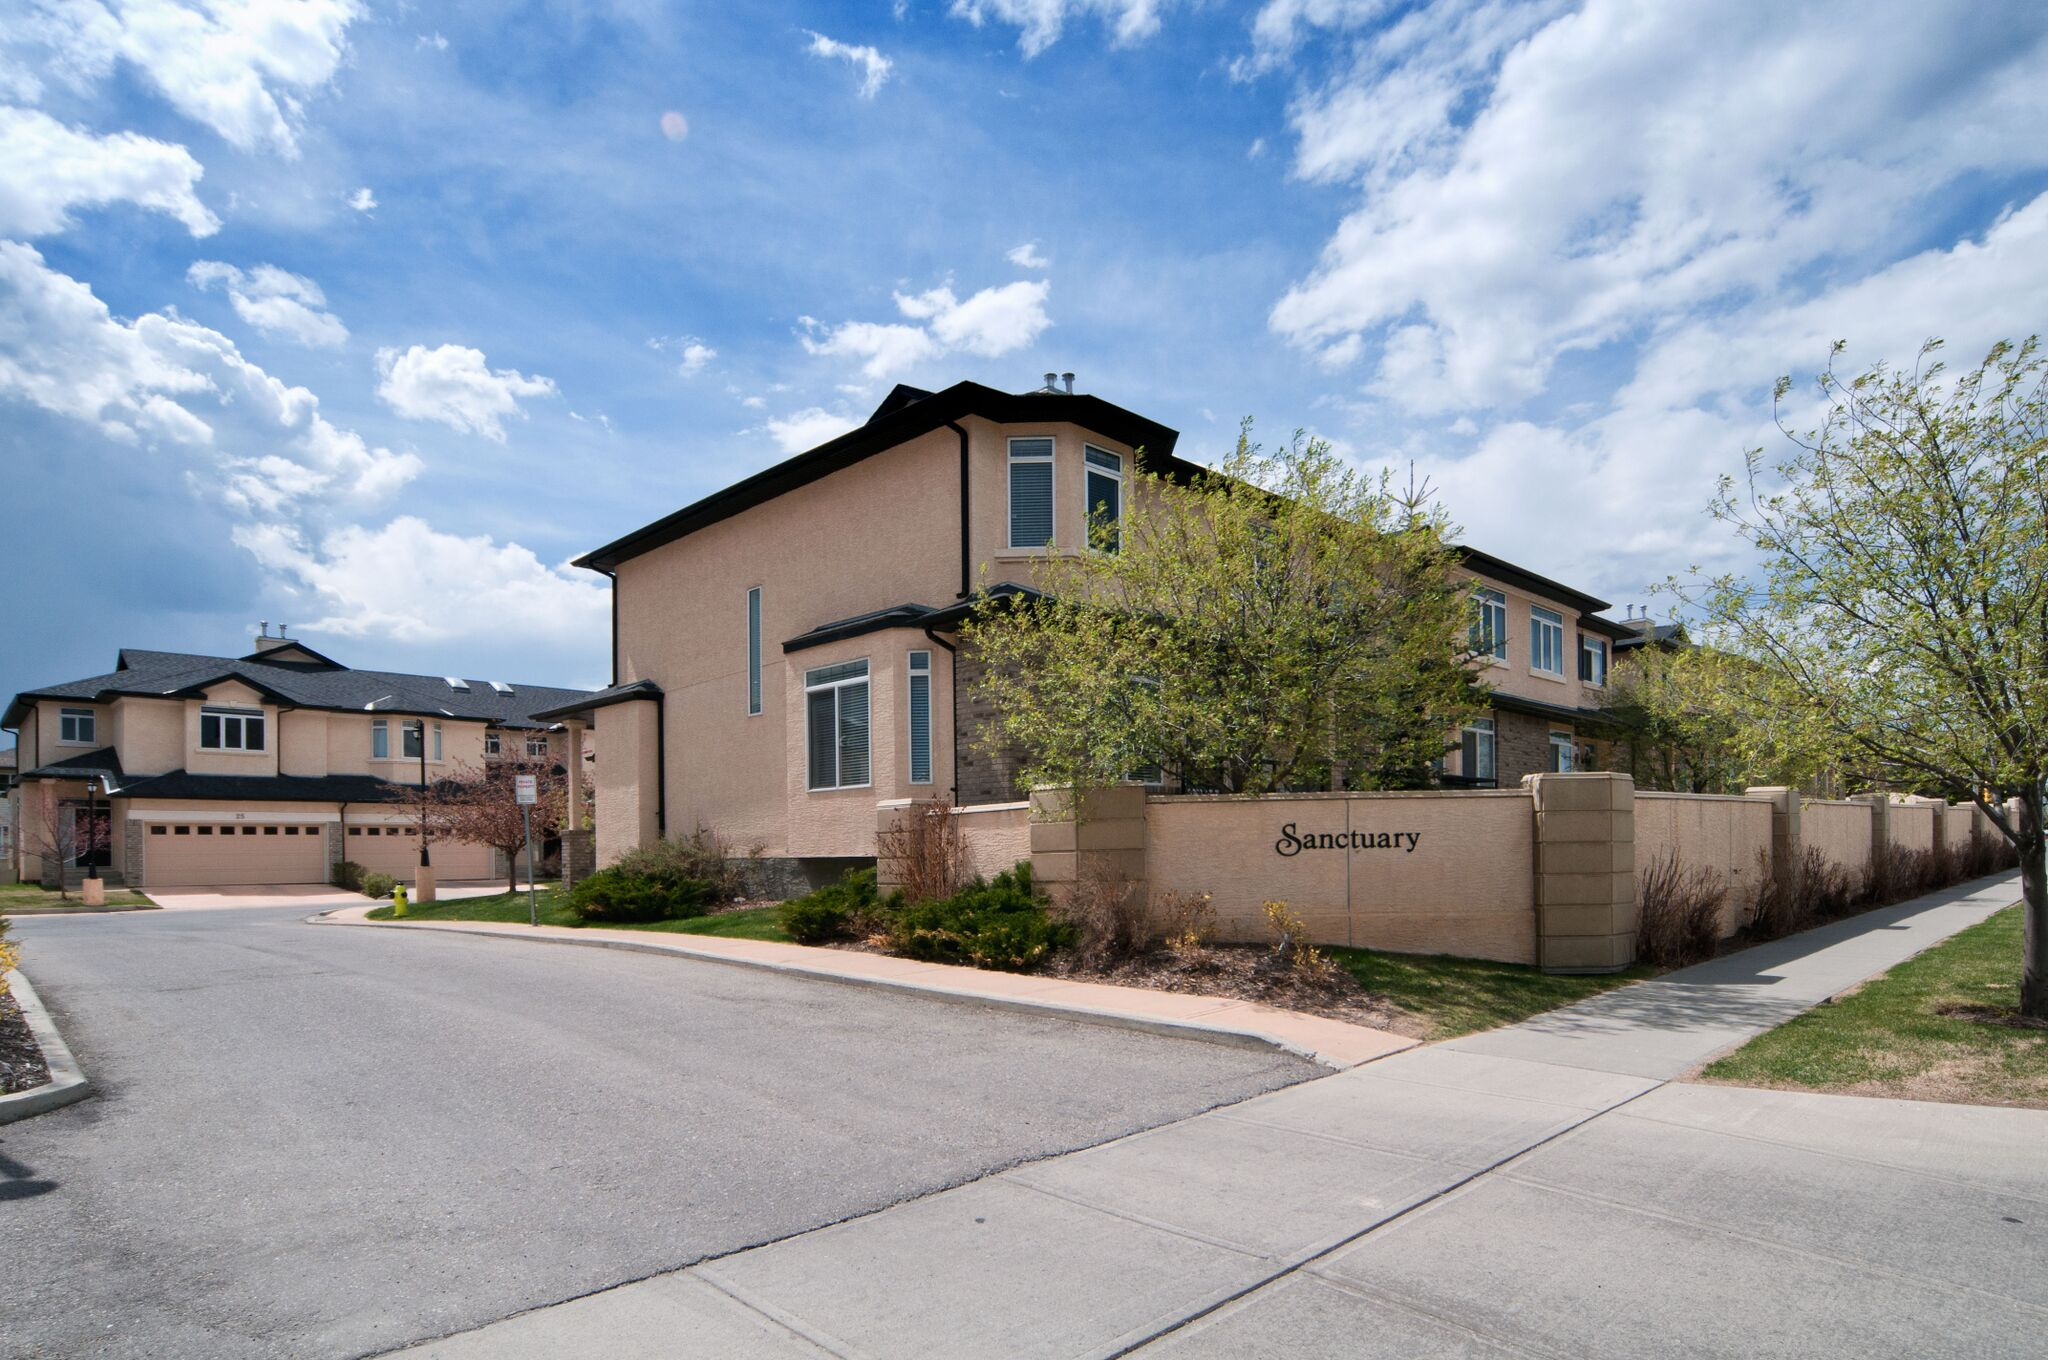 SPRINGSIDE TOWNHOUSE COMPLEX